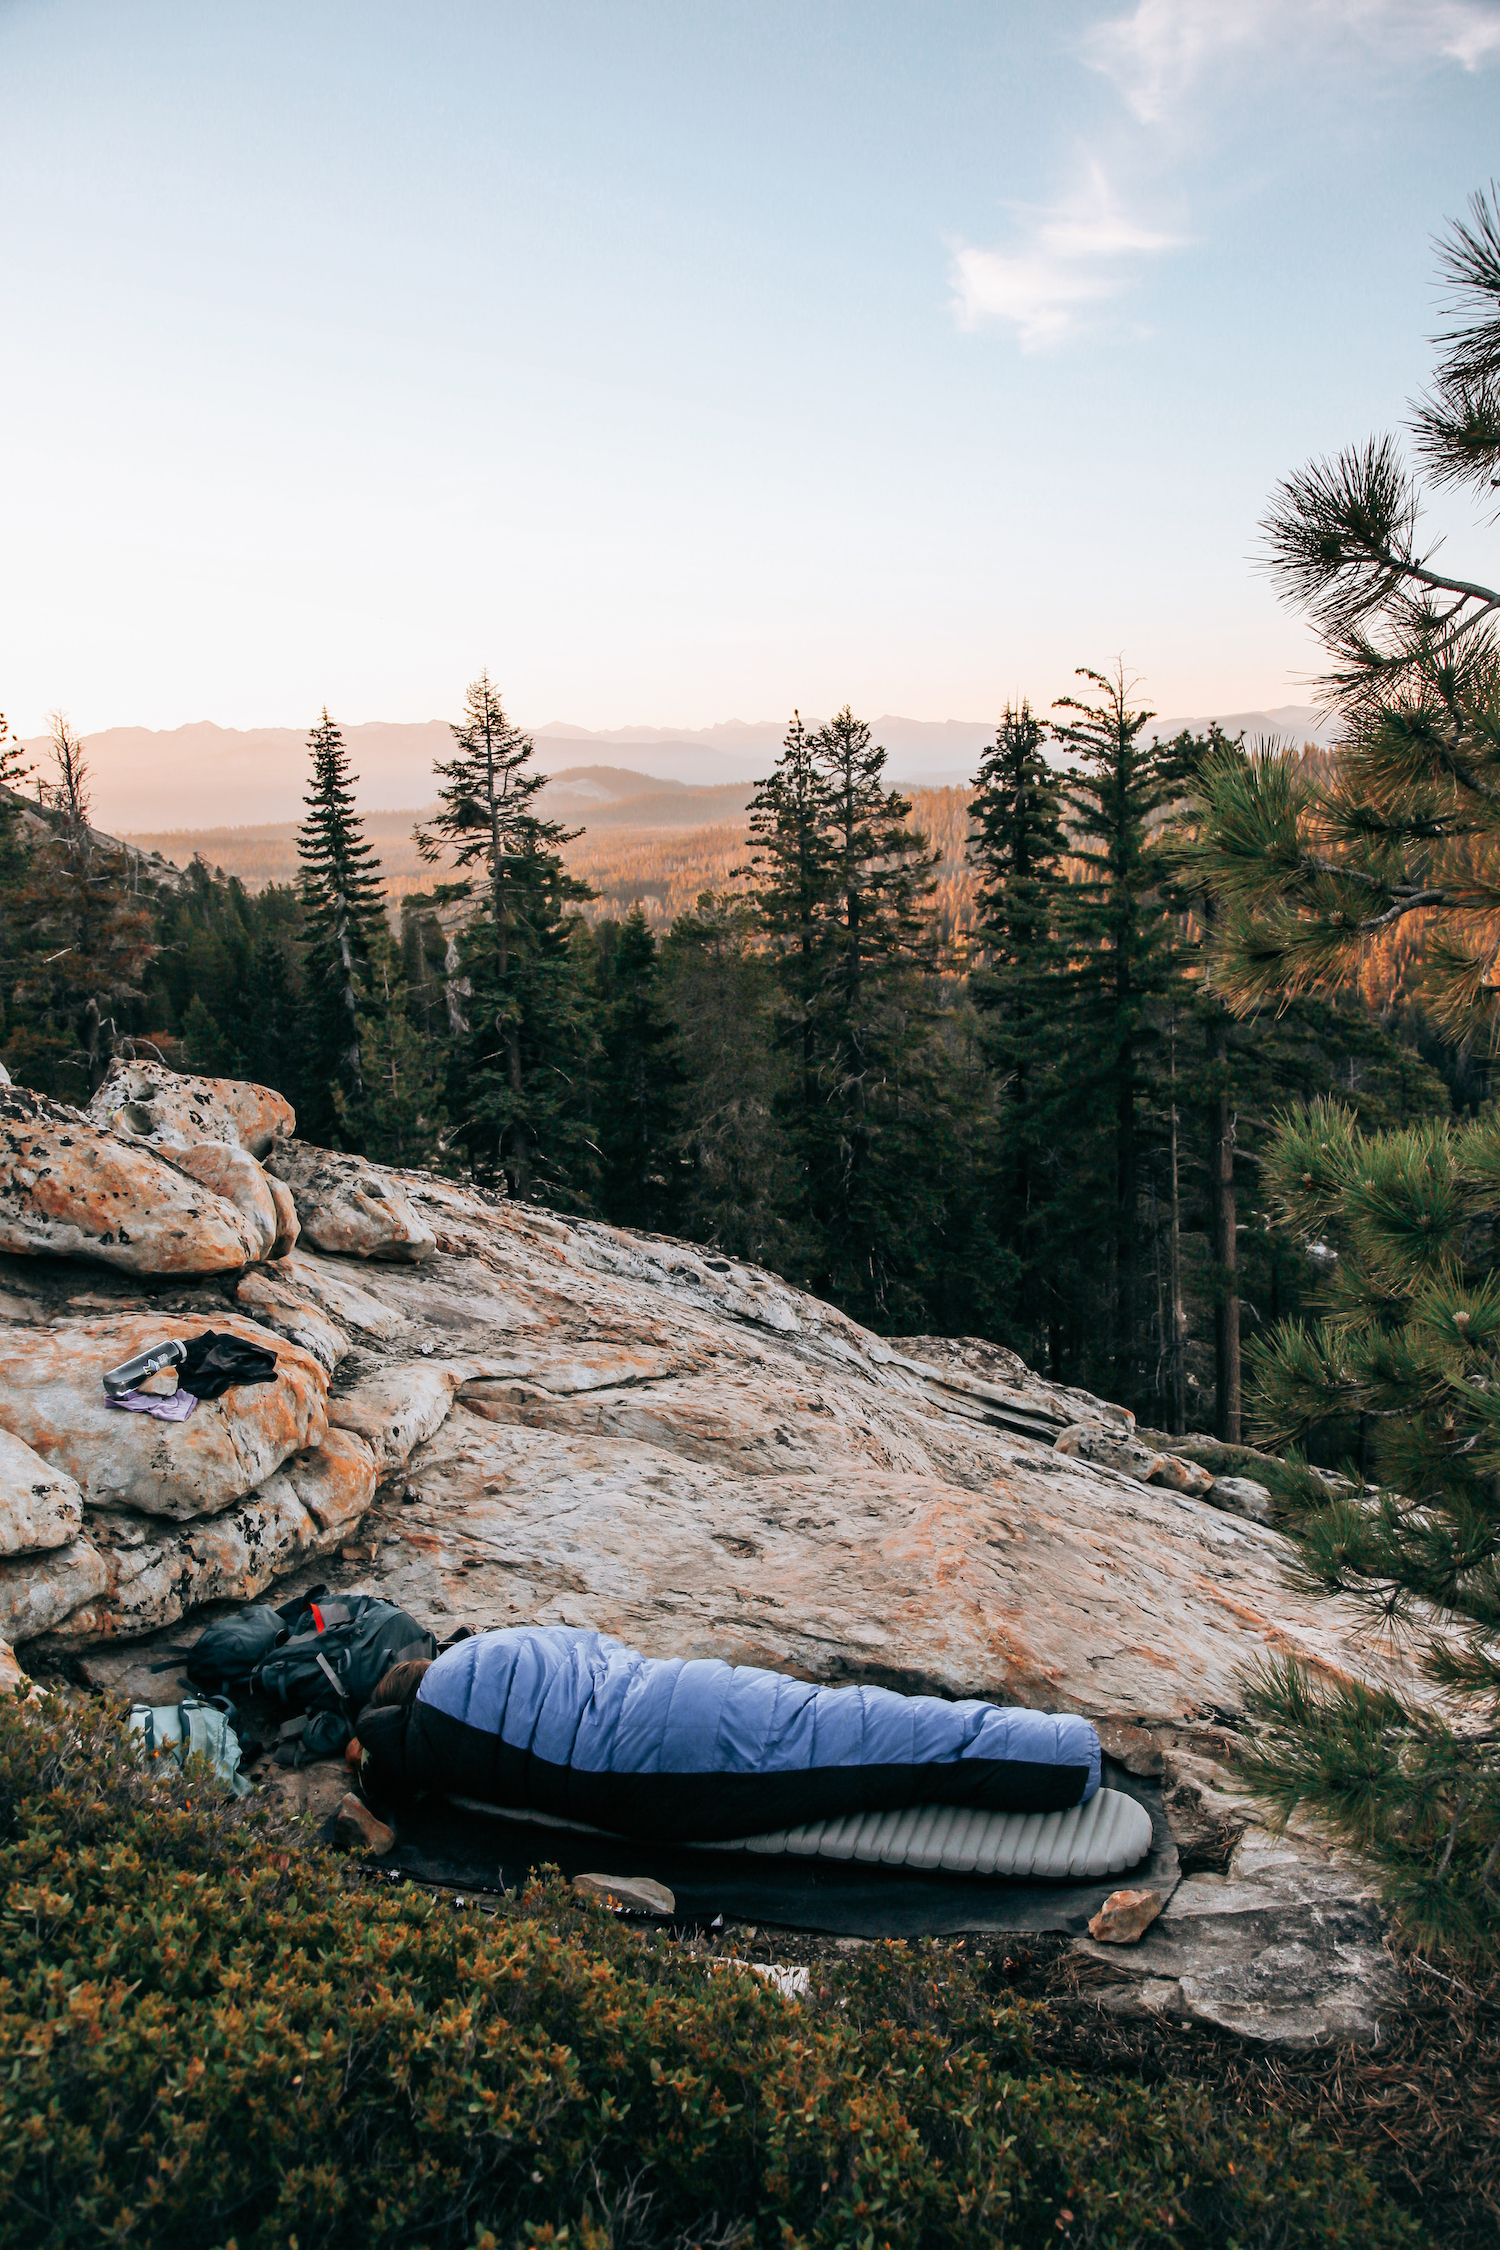 Sleeping under the stars on a ledge in the wilderness